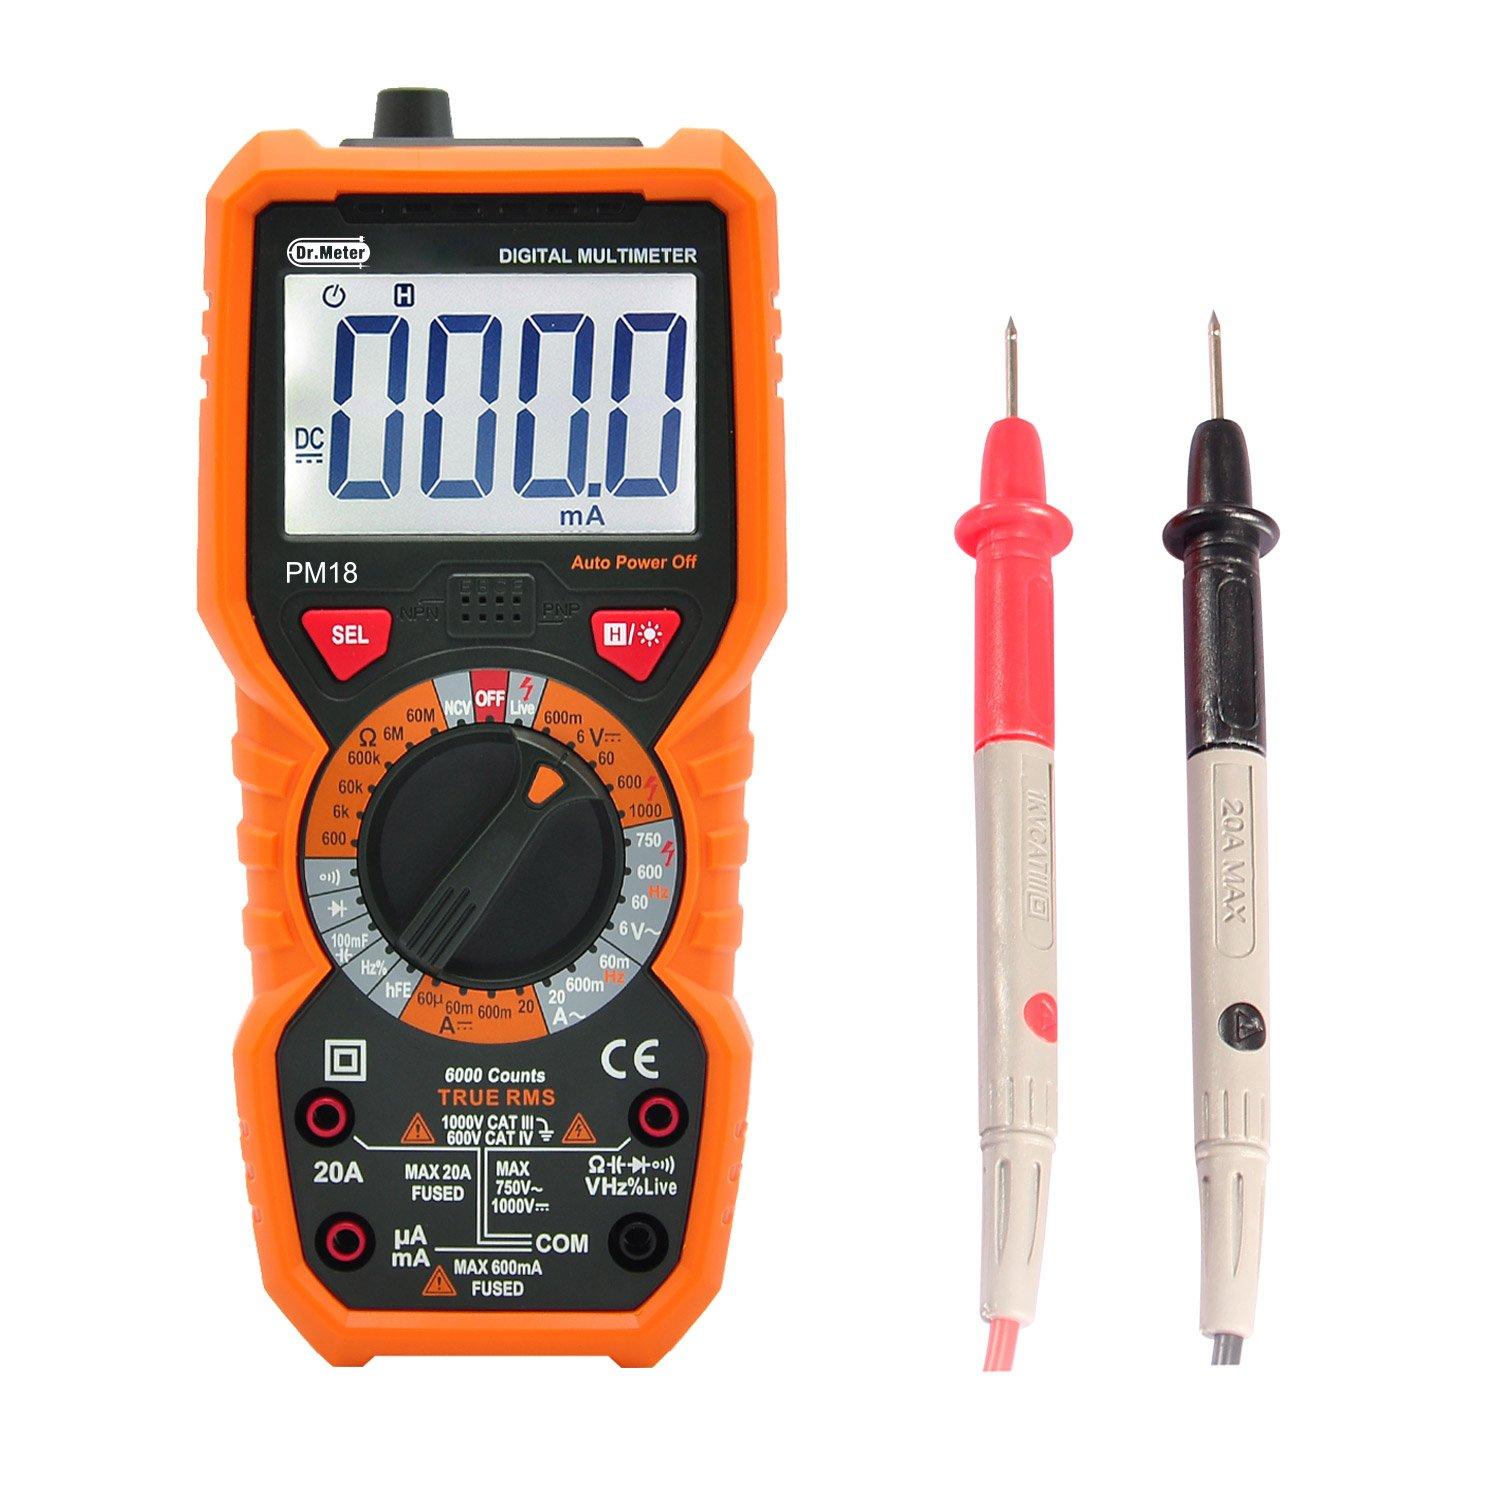 [Digital Multimeters] Dr.meter Digital Multimeter Trms 6000 Counts Tester Non-Contact Voltage Detection Multi Meter, PM18 by Dr.meter (Image #9)